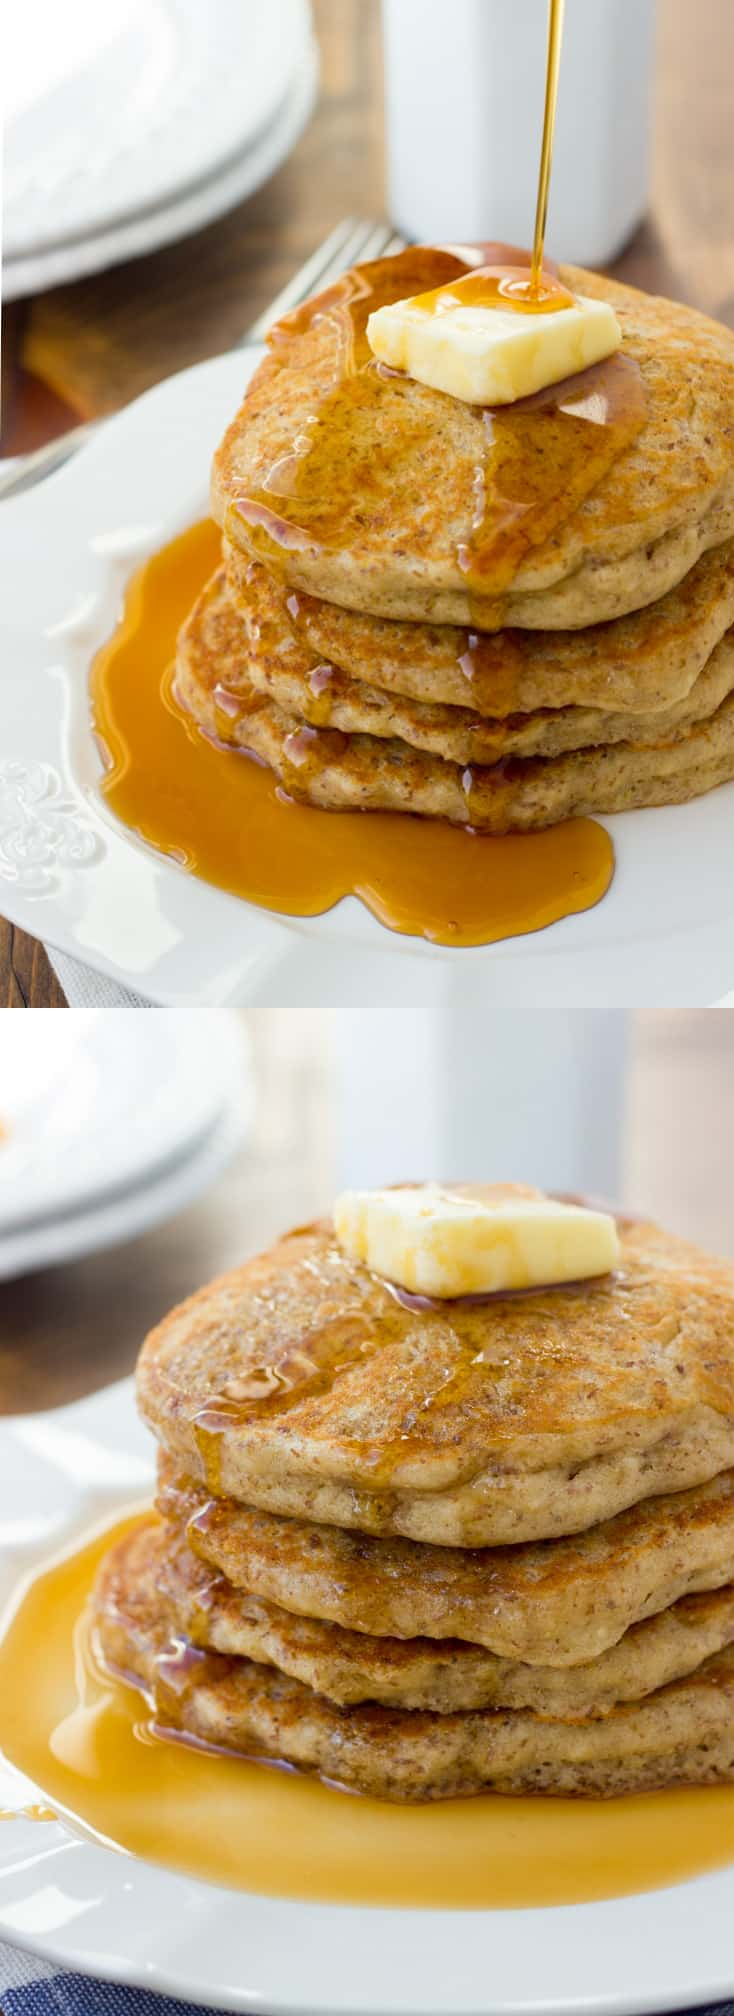 Gluten-Free Buckwheat Flax Pancakes! Fluffy, flavorful pancakes made from a wholesome gluten-free flour blend. Our favorite pancakes!